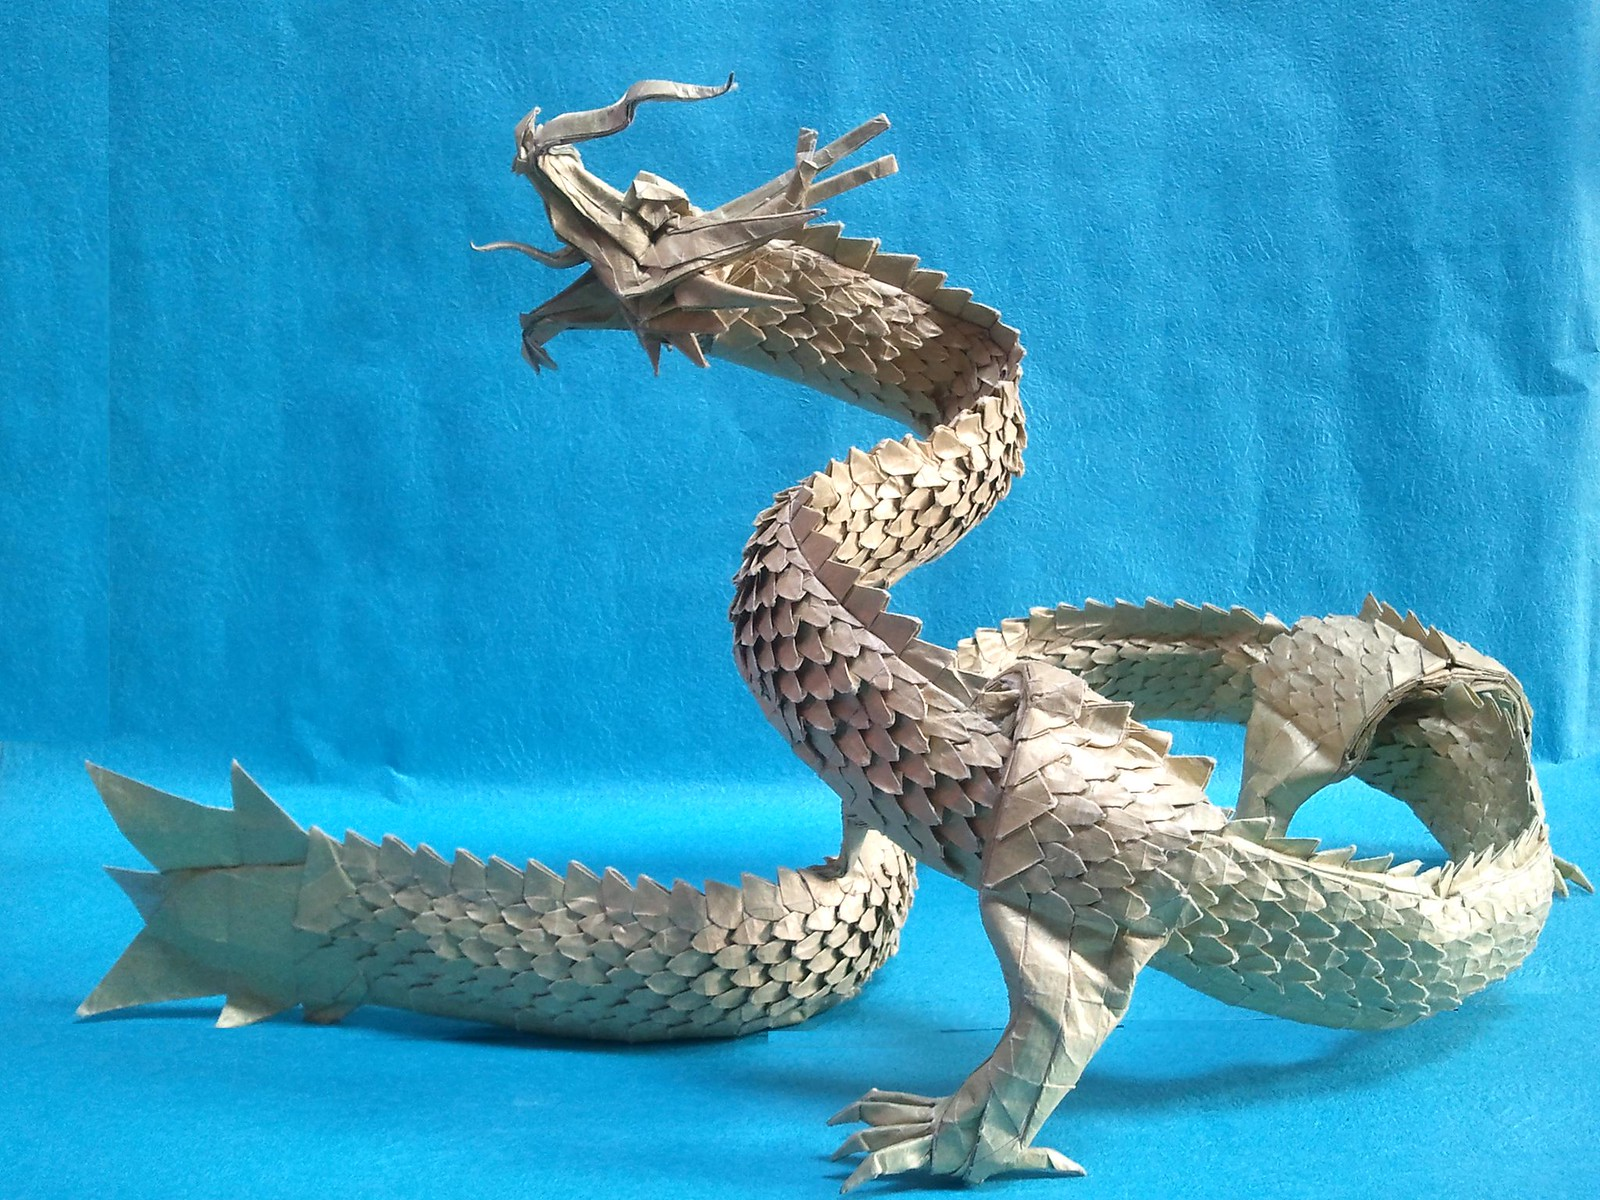 Satoshi Kamiya Ancient Dragon Instructions Origami Diagram By Cerberus Tessellations 10 Amazing Dragons For You To Enjoy